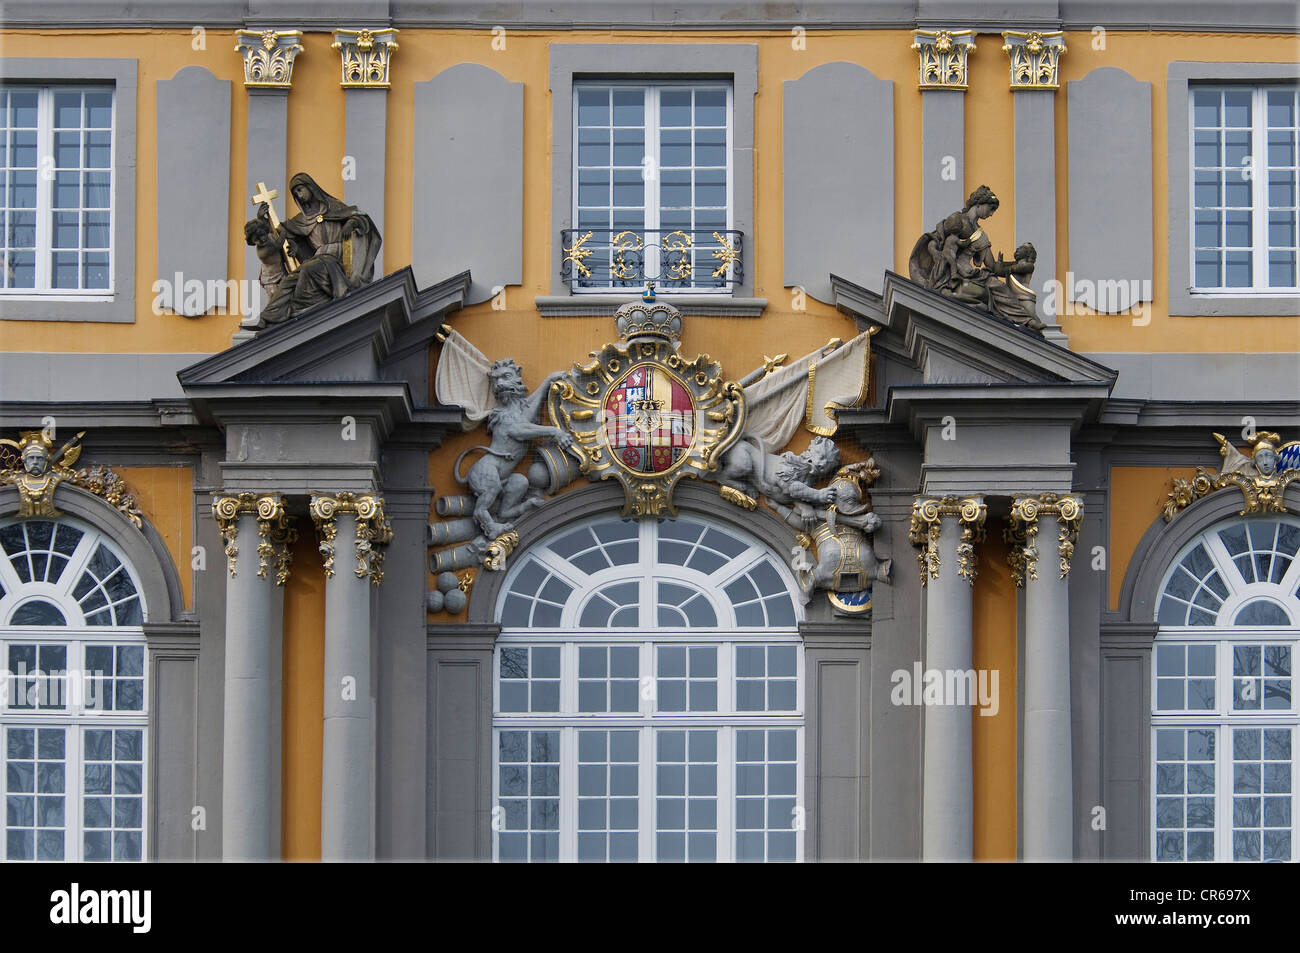 View from south of the renovated Koblenz Gate, coat of farms of Clemens August of Bavaria, Bonn, North Rhine-Westphalia - Stock Image